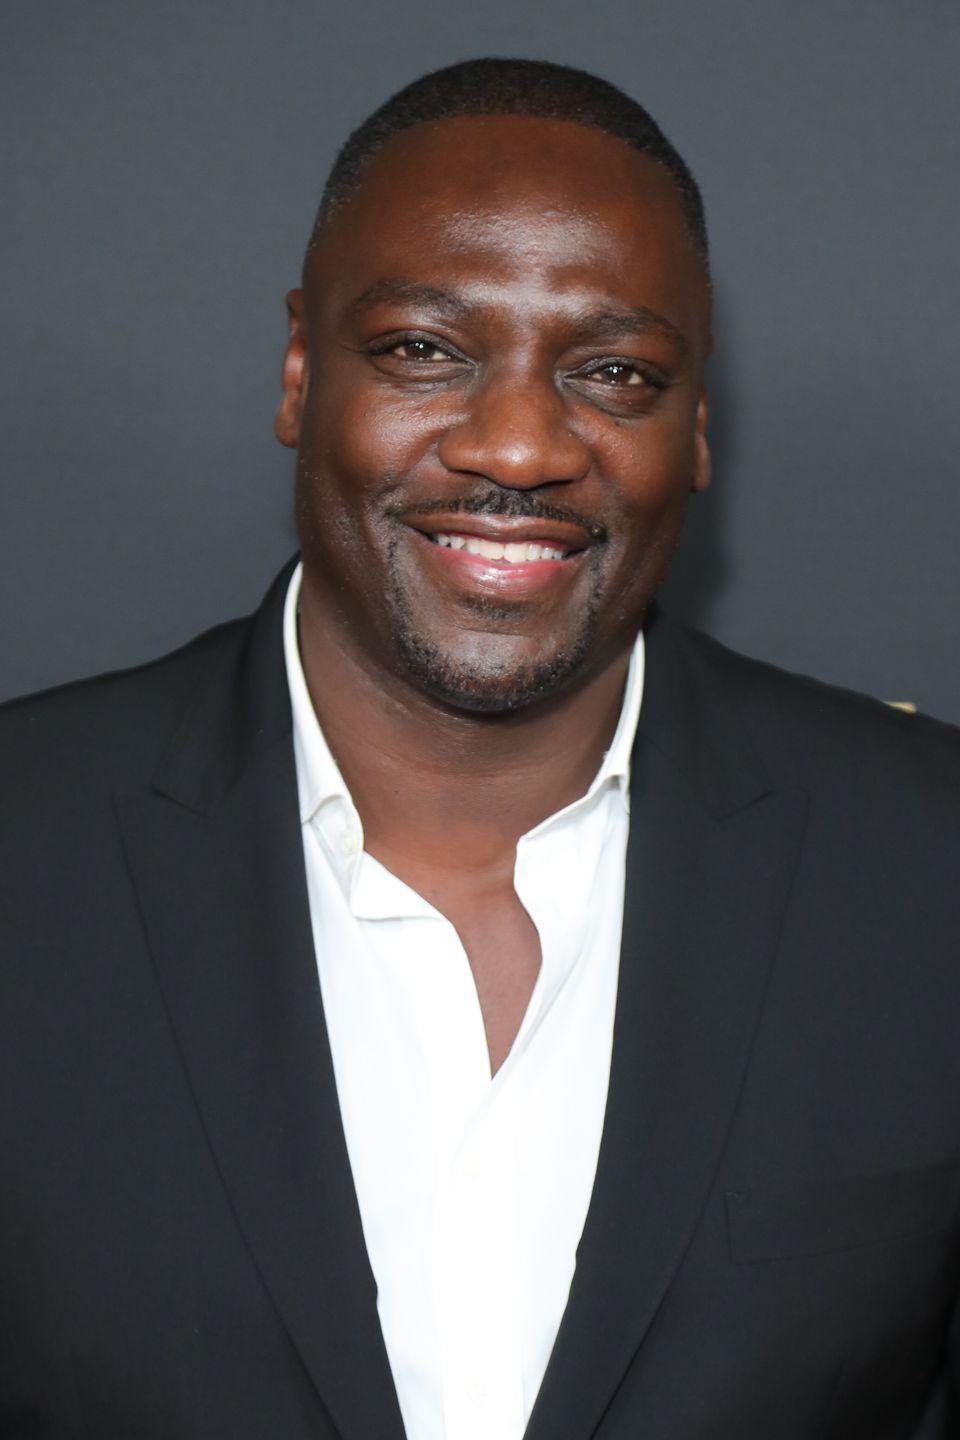 "<p>Another<em> Lost </em>actor decided it was time for him to leave the island in season 3, even though the show's creator didn't necessarily agree. Adewale Akinnuoye-Agbaje played Mr. Eko and the reason for his departure boiled down to the actor feeling like his character's story was complete. ""In a perfect world it would've been great to have Mr. Eko for a little longer. But it was the best time to go our separate ways,"" executive producer Carlton Cuse told <a href=""https://ew.com/article/2006/11/03/life-after-death-man-behind-losts-mr-eko/"" rel=""nofollow noopener"" target=""_blank"" data-ylk=""slk:Entertainment Weekly"" class=""link rapid-noclick-resp""><em>Entertainment Weekly</em></a>.</p>"